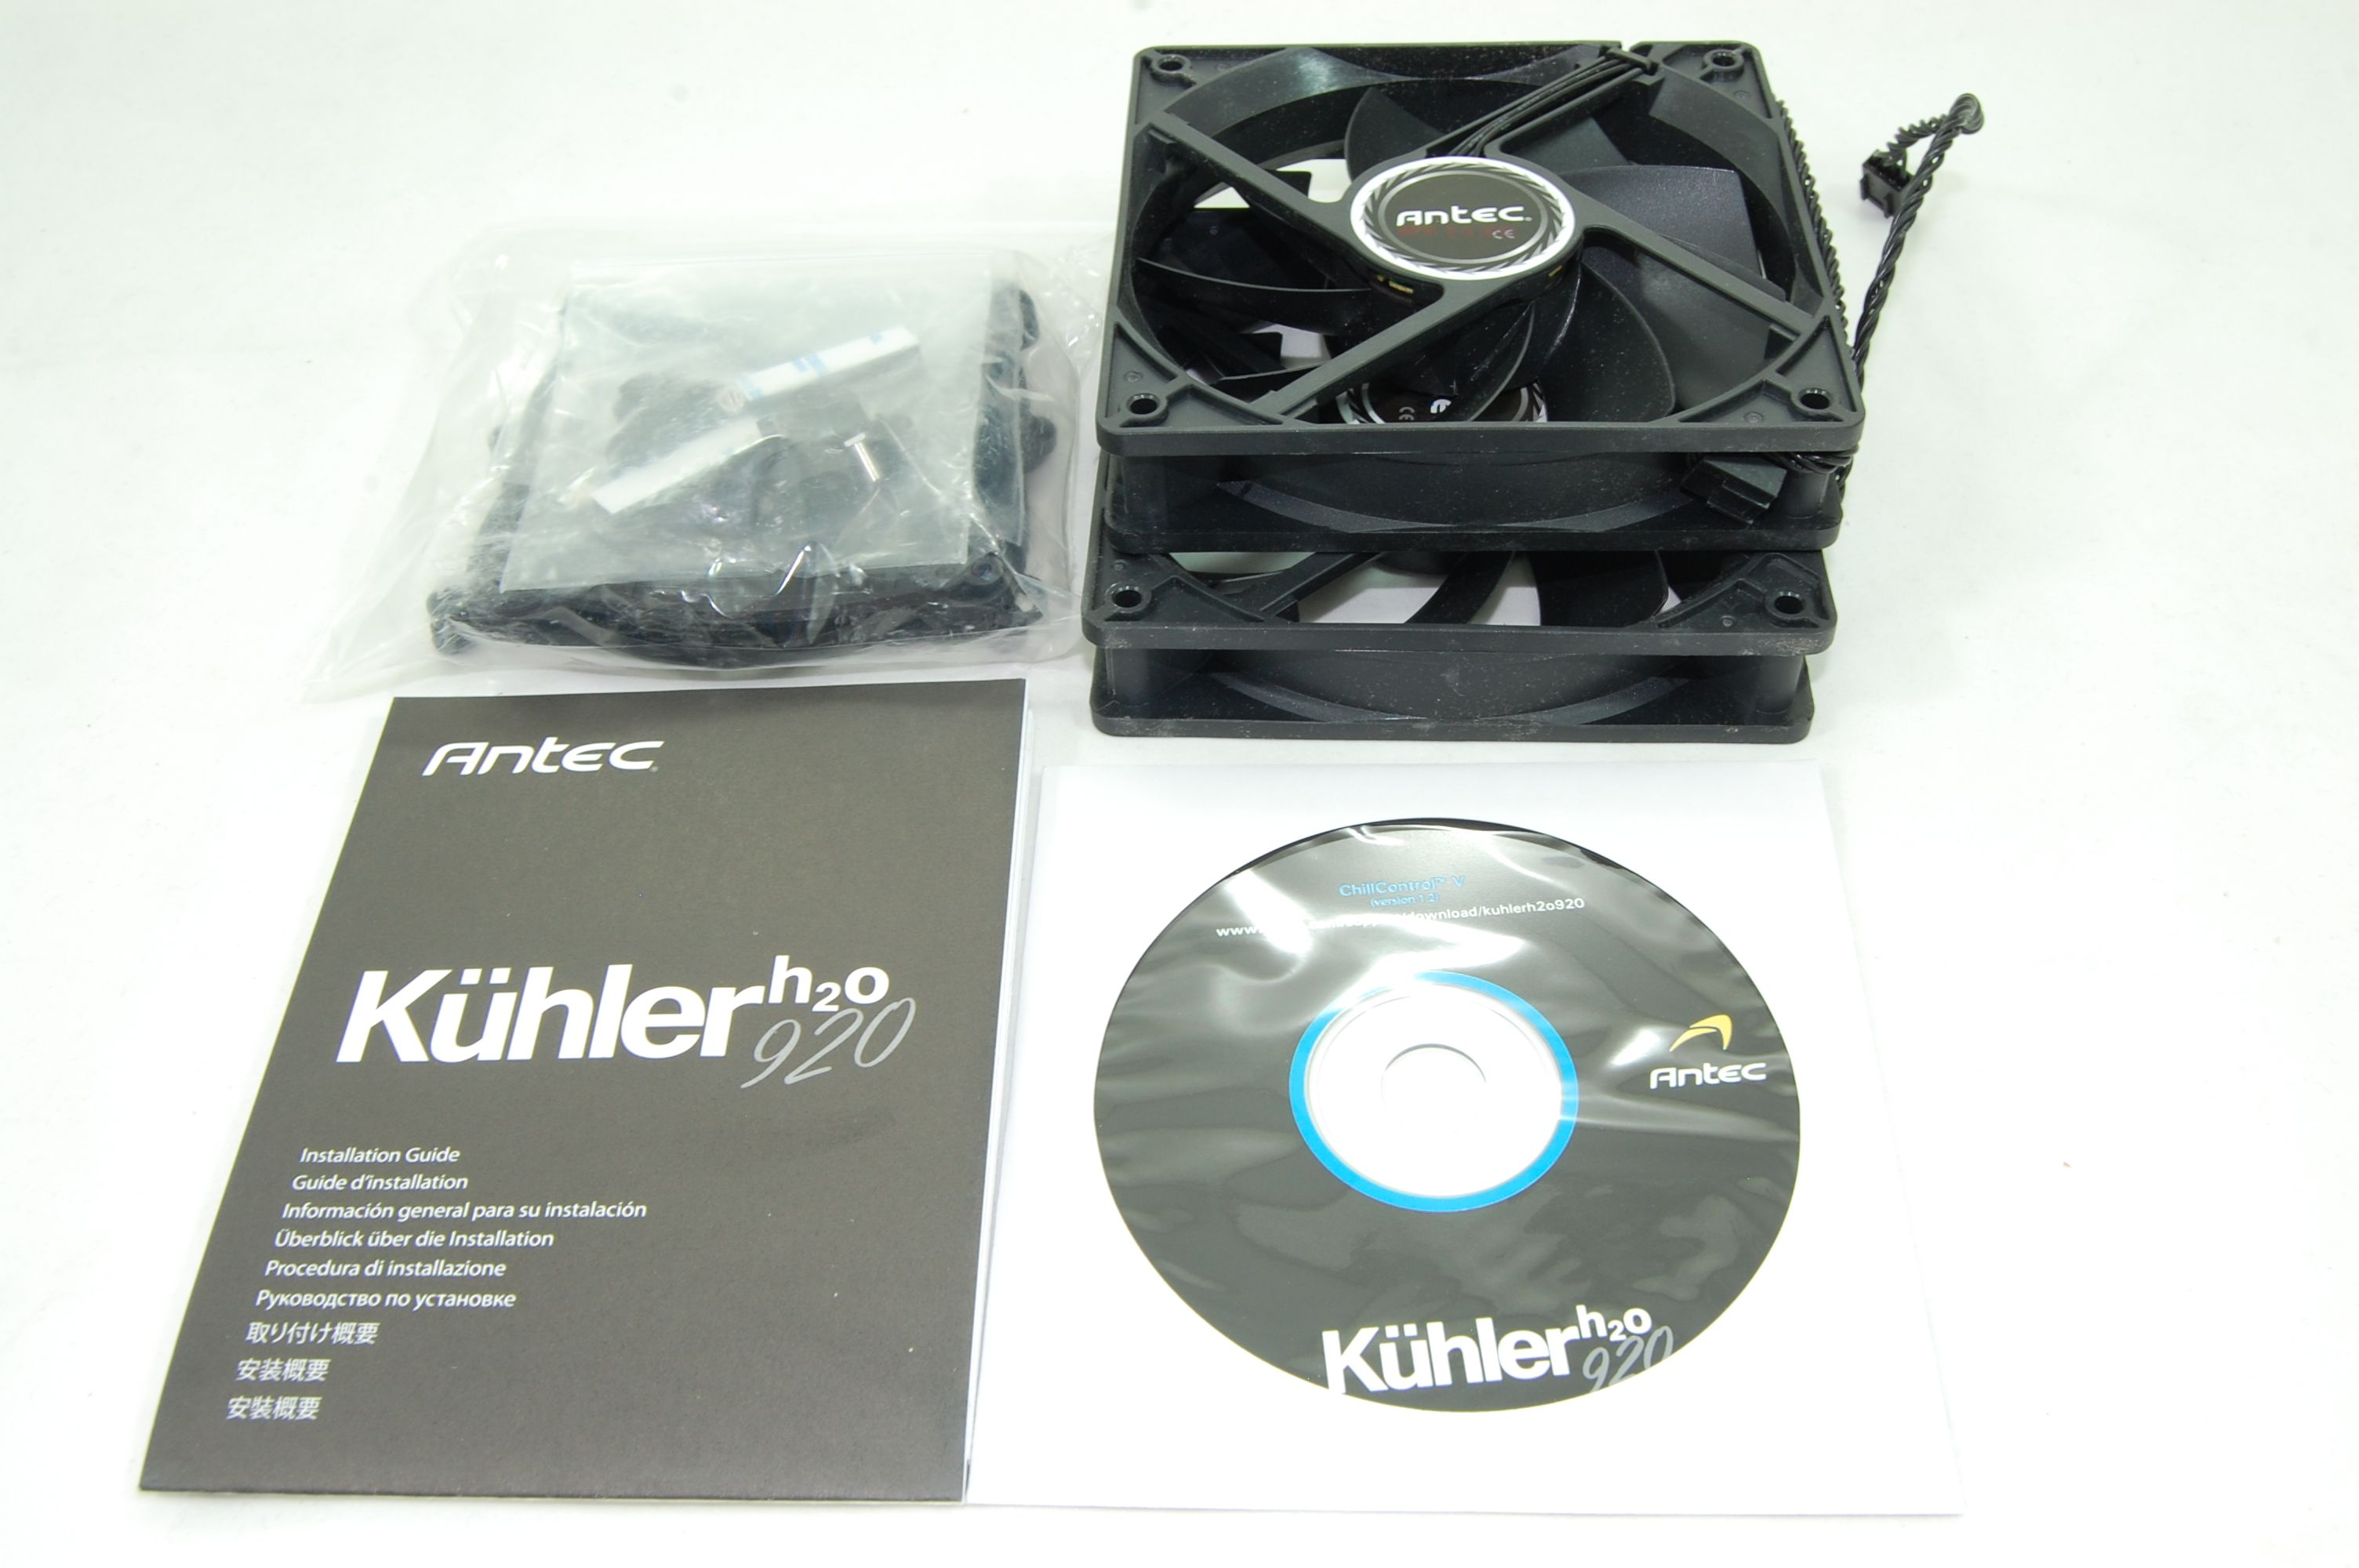 Kuhler920_Contents